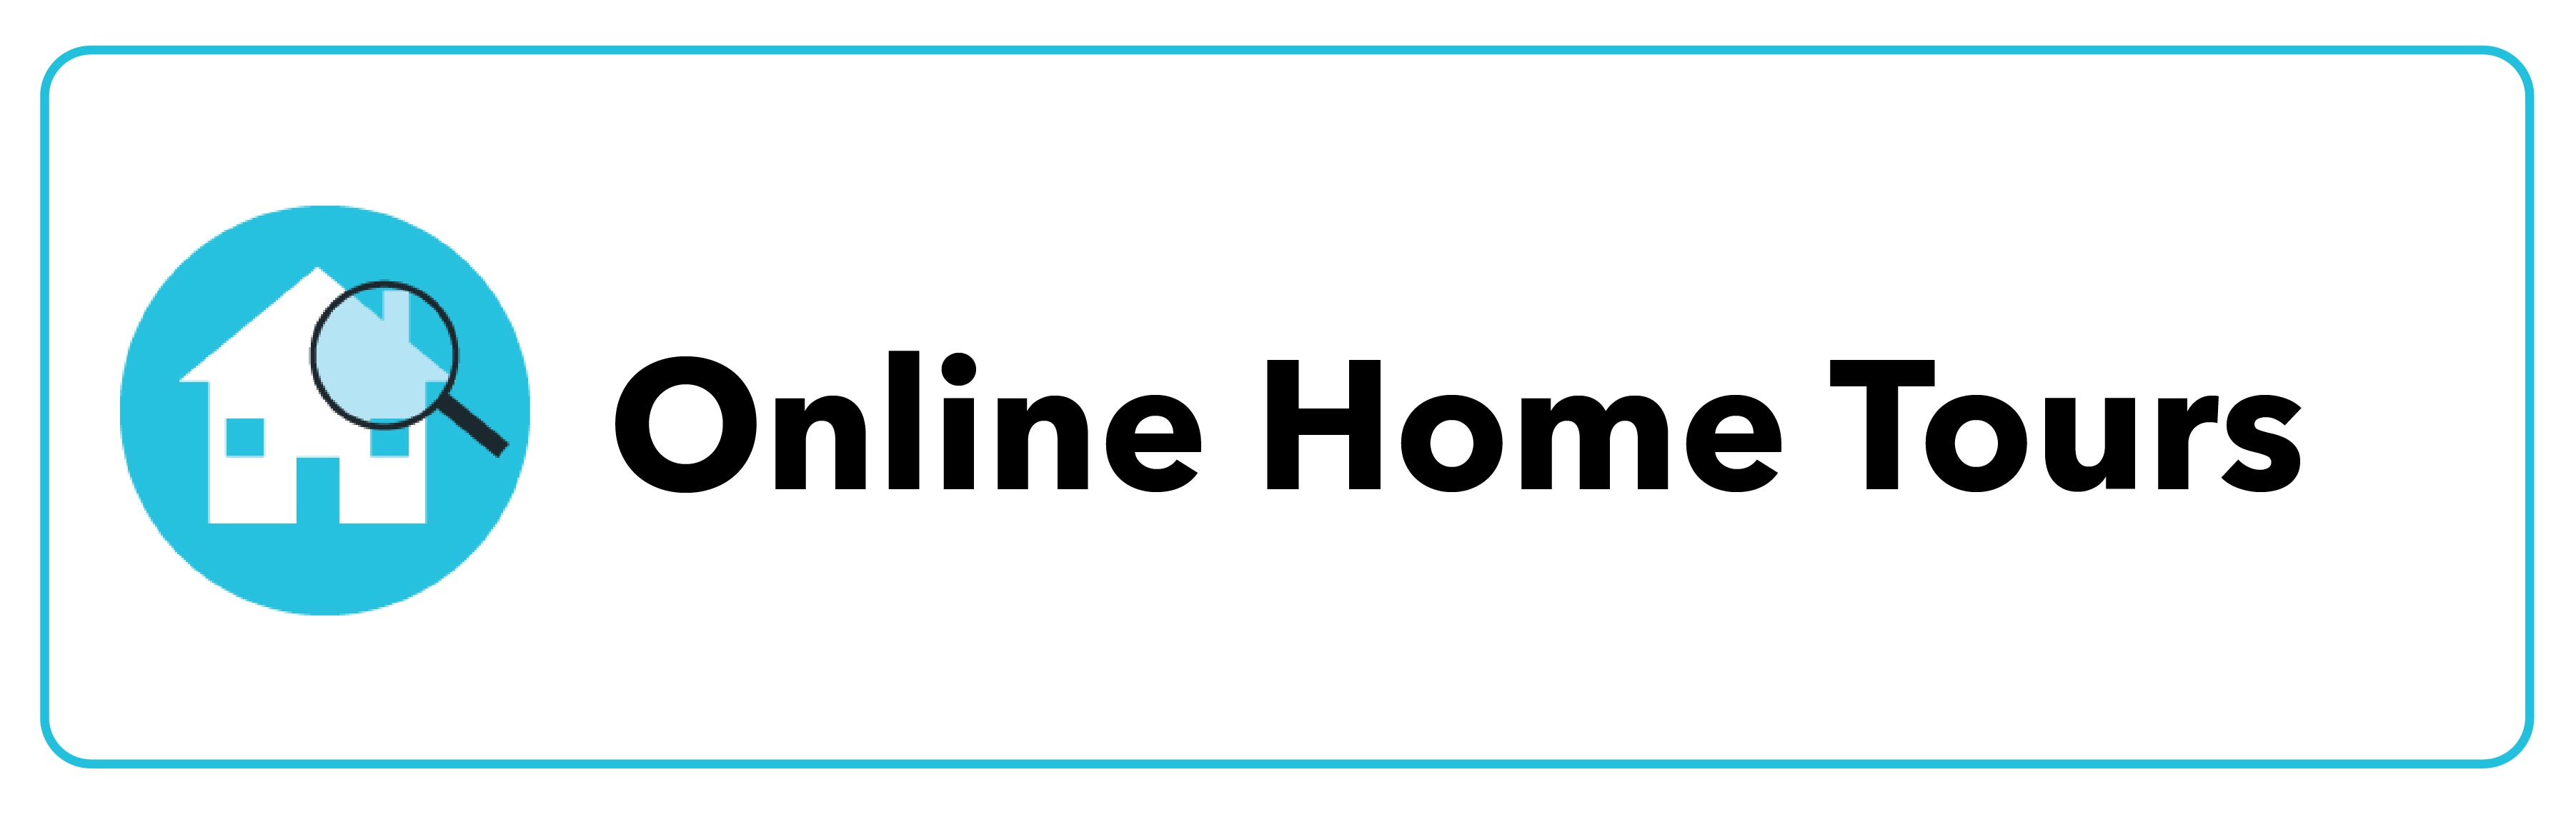 Online Home Tours